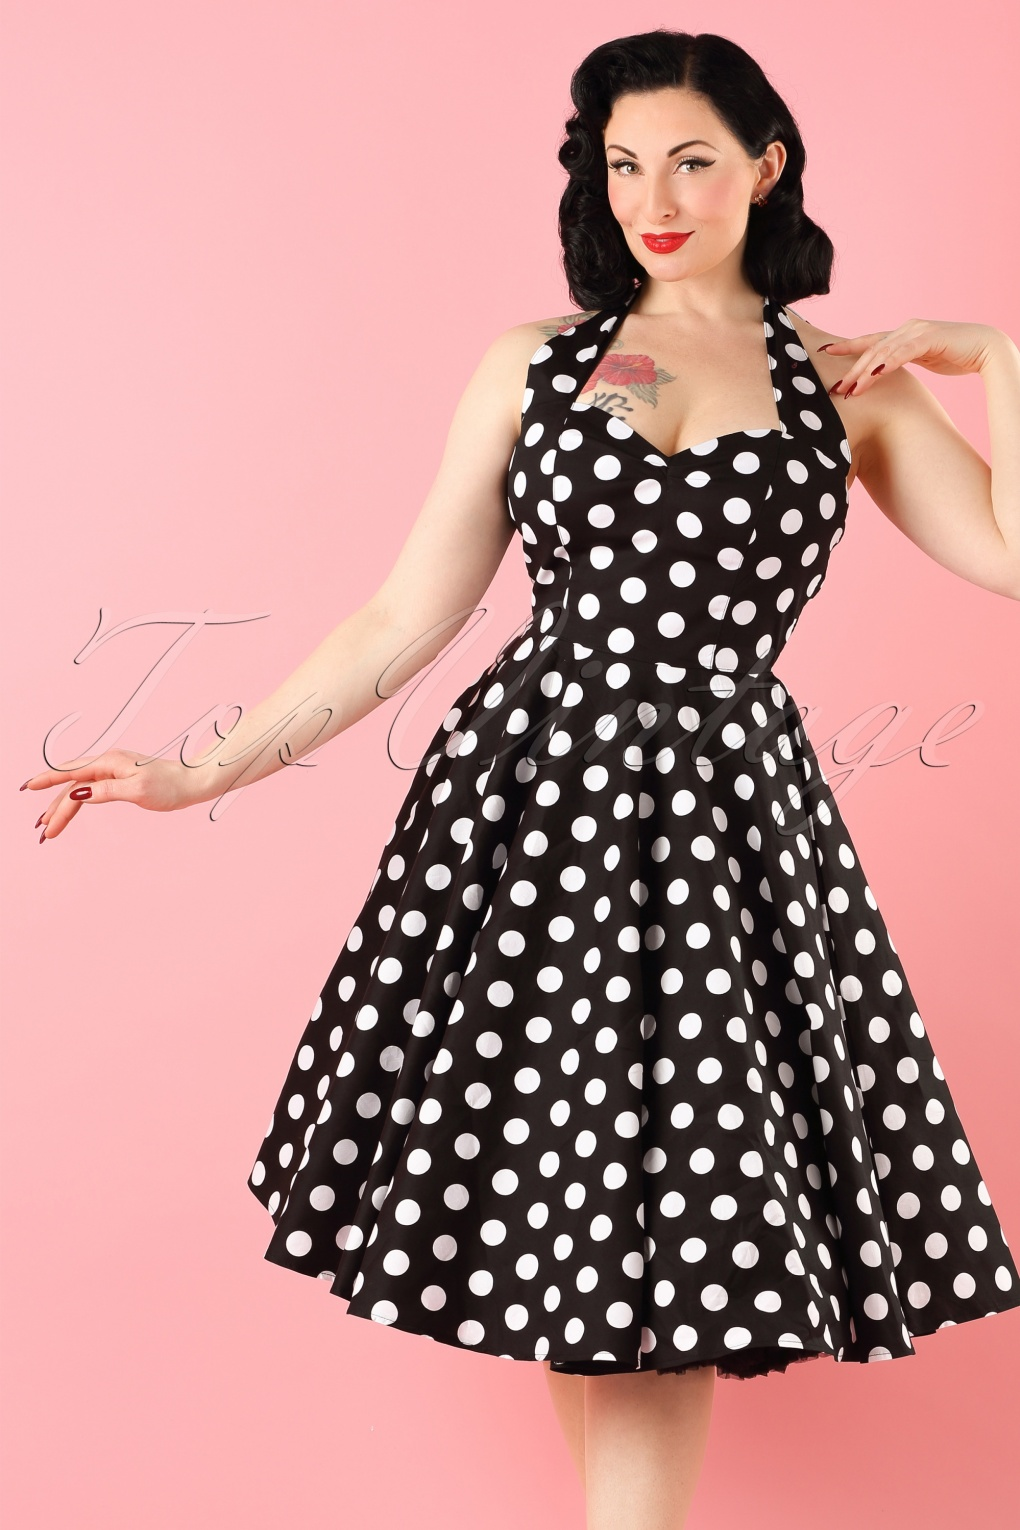 50s meriam polkadot swing dress in black and white. Black Bedroom Furniture Sets. Home Design Ideas